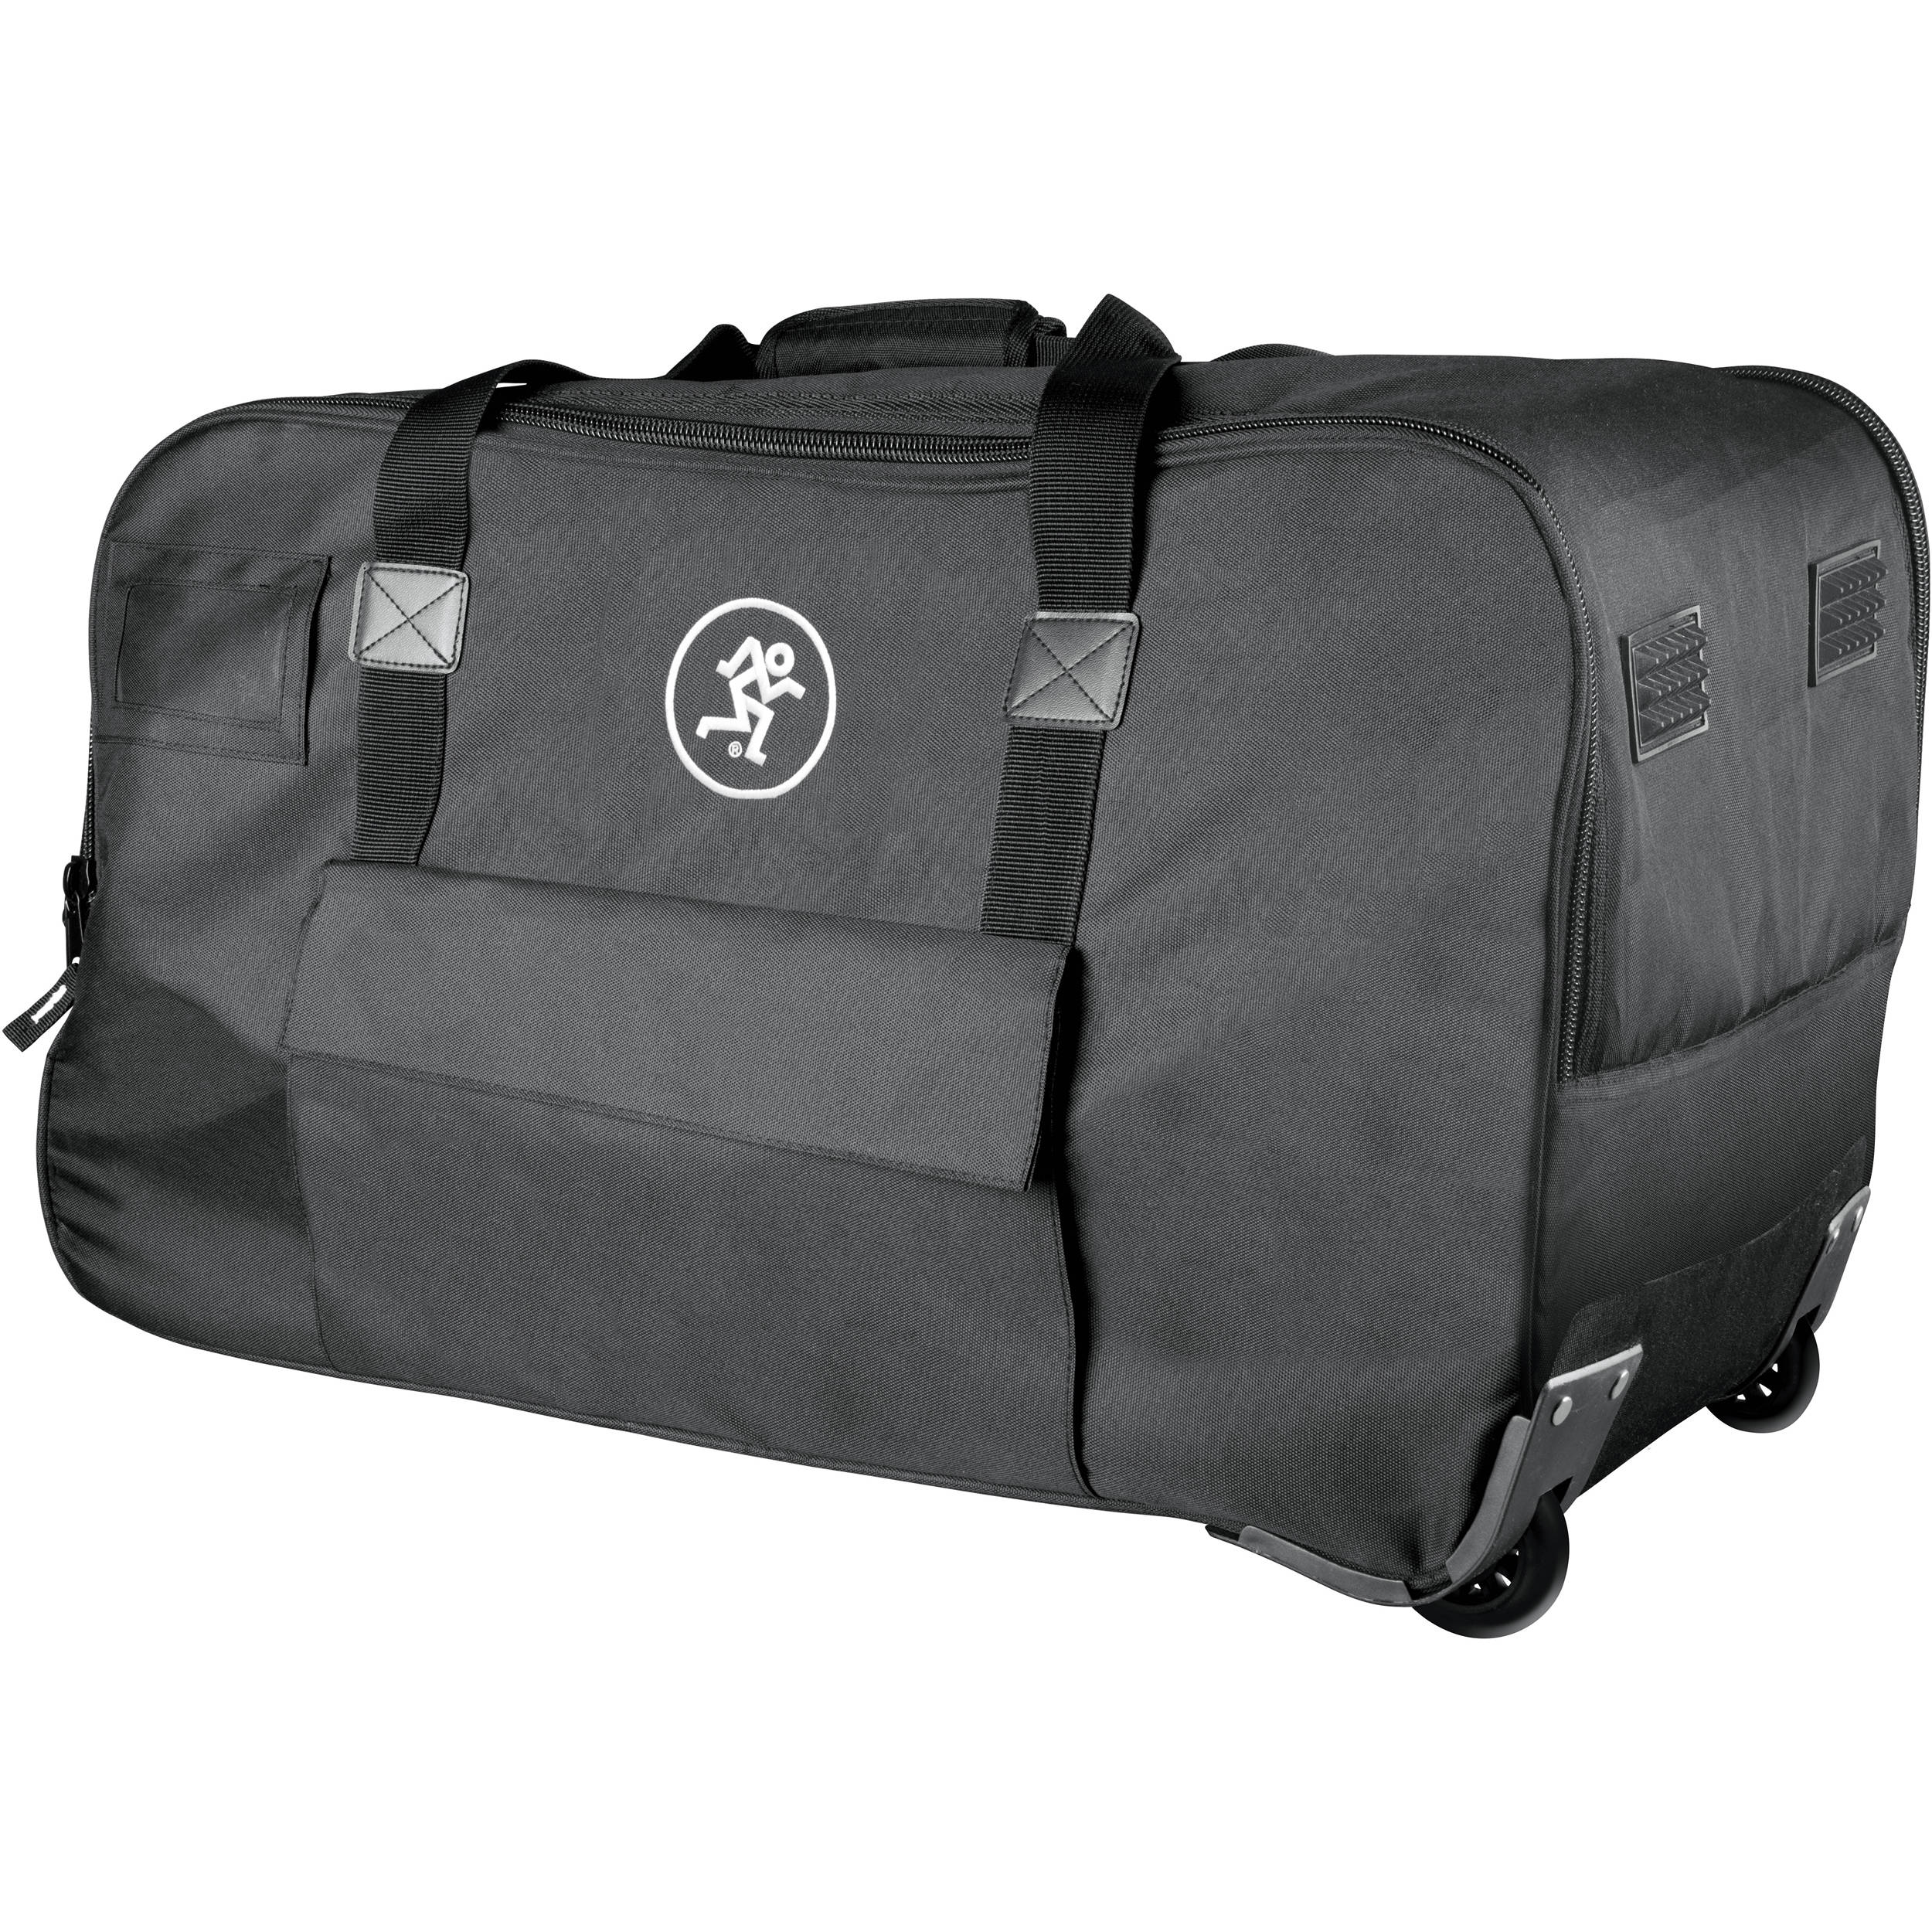 Mackie Thump 15a 15bst Rolling Speaker Bag With Wheels And Integrated Handle